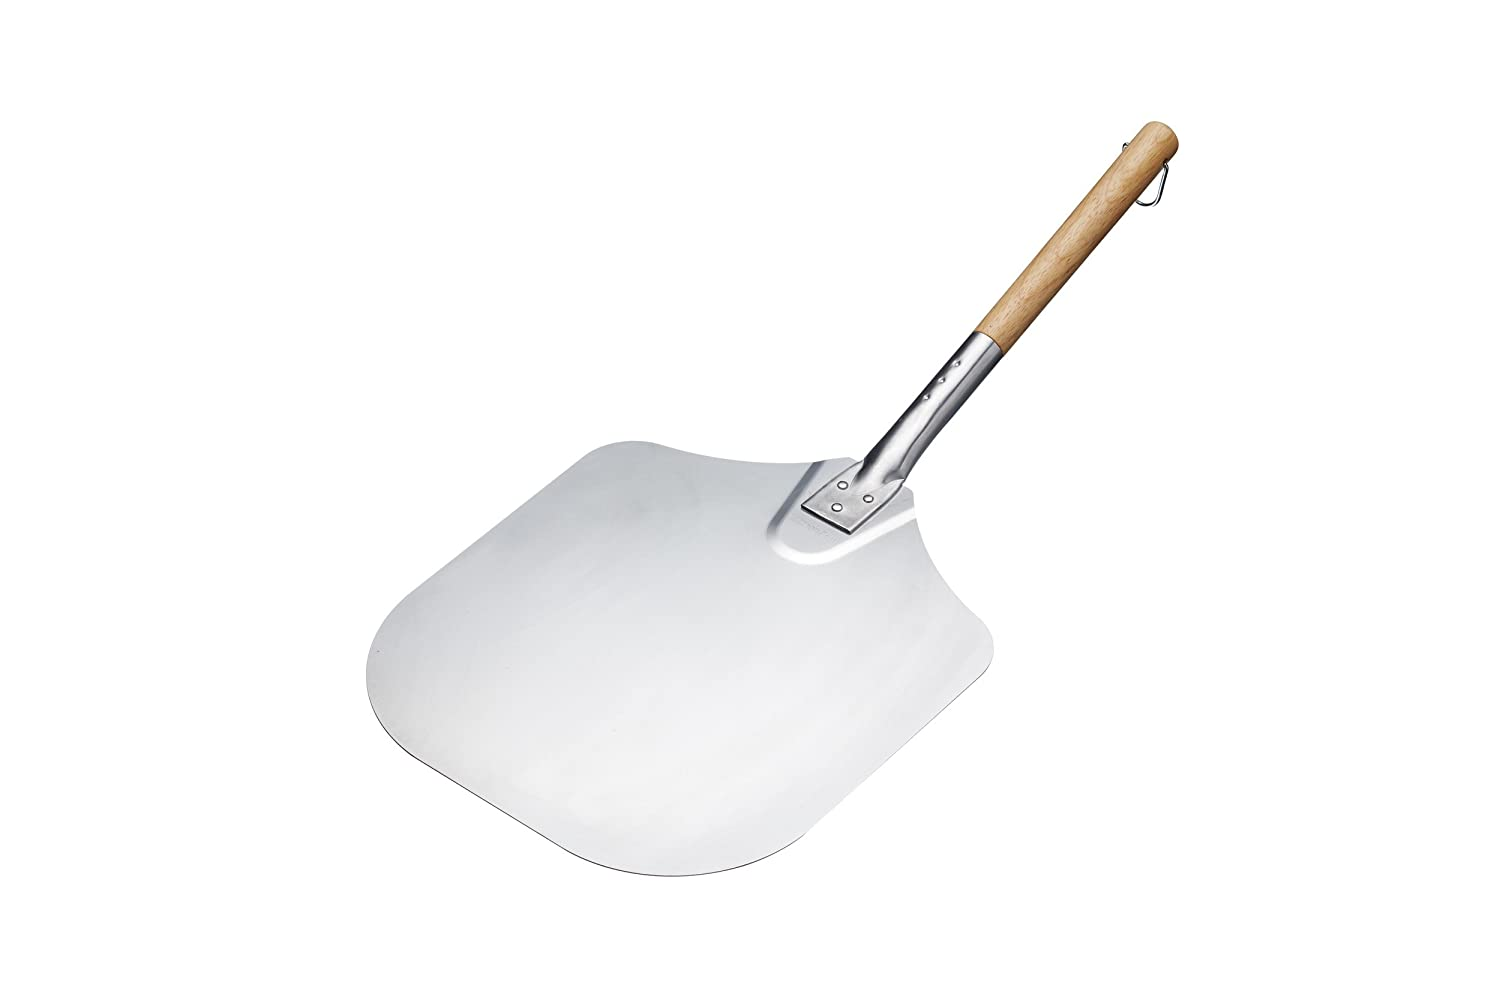 Kitchencraft Italian Traditional Pizza Peel, 65.5 x 30.5cm - Silver/beige